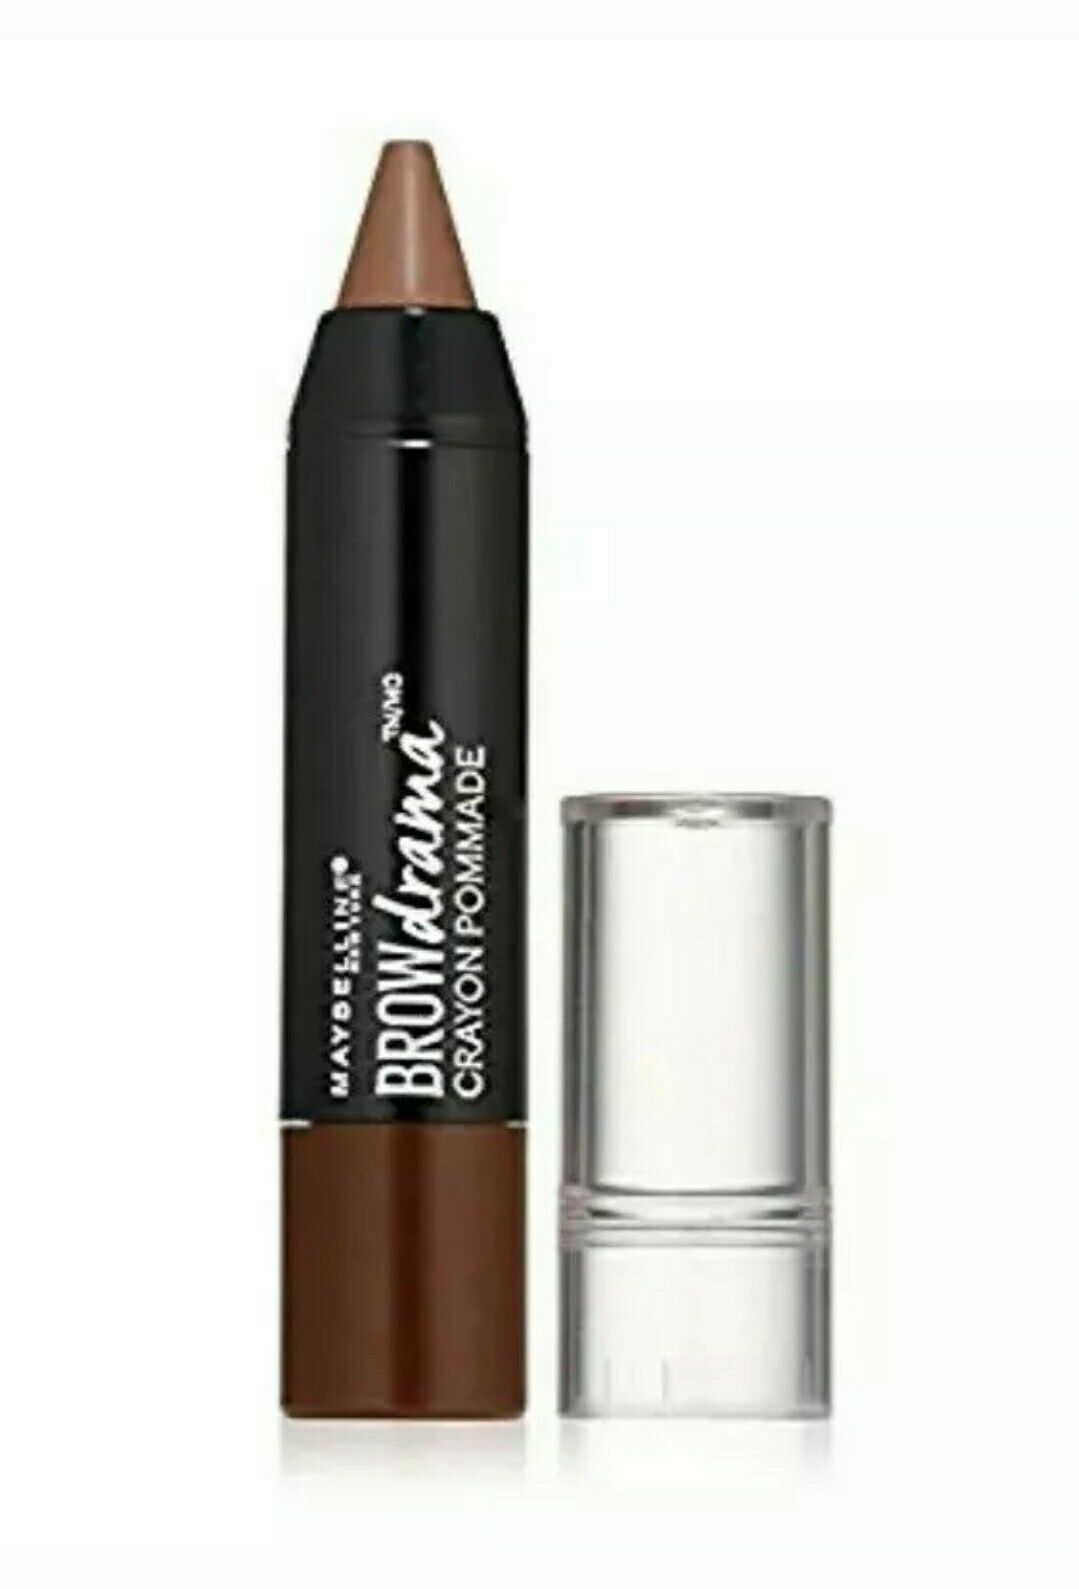 Primary image for Maybelline New York Eyestudio Brow Drama Pomade Crayon Eye Color 265 Auburn New